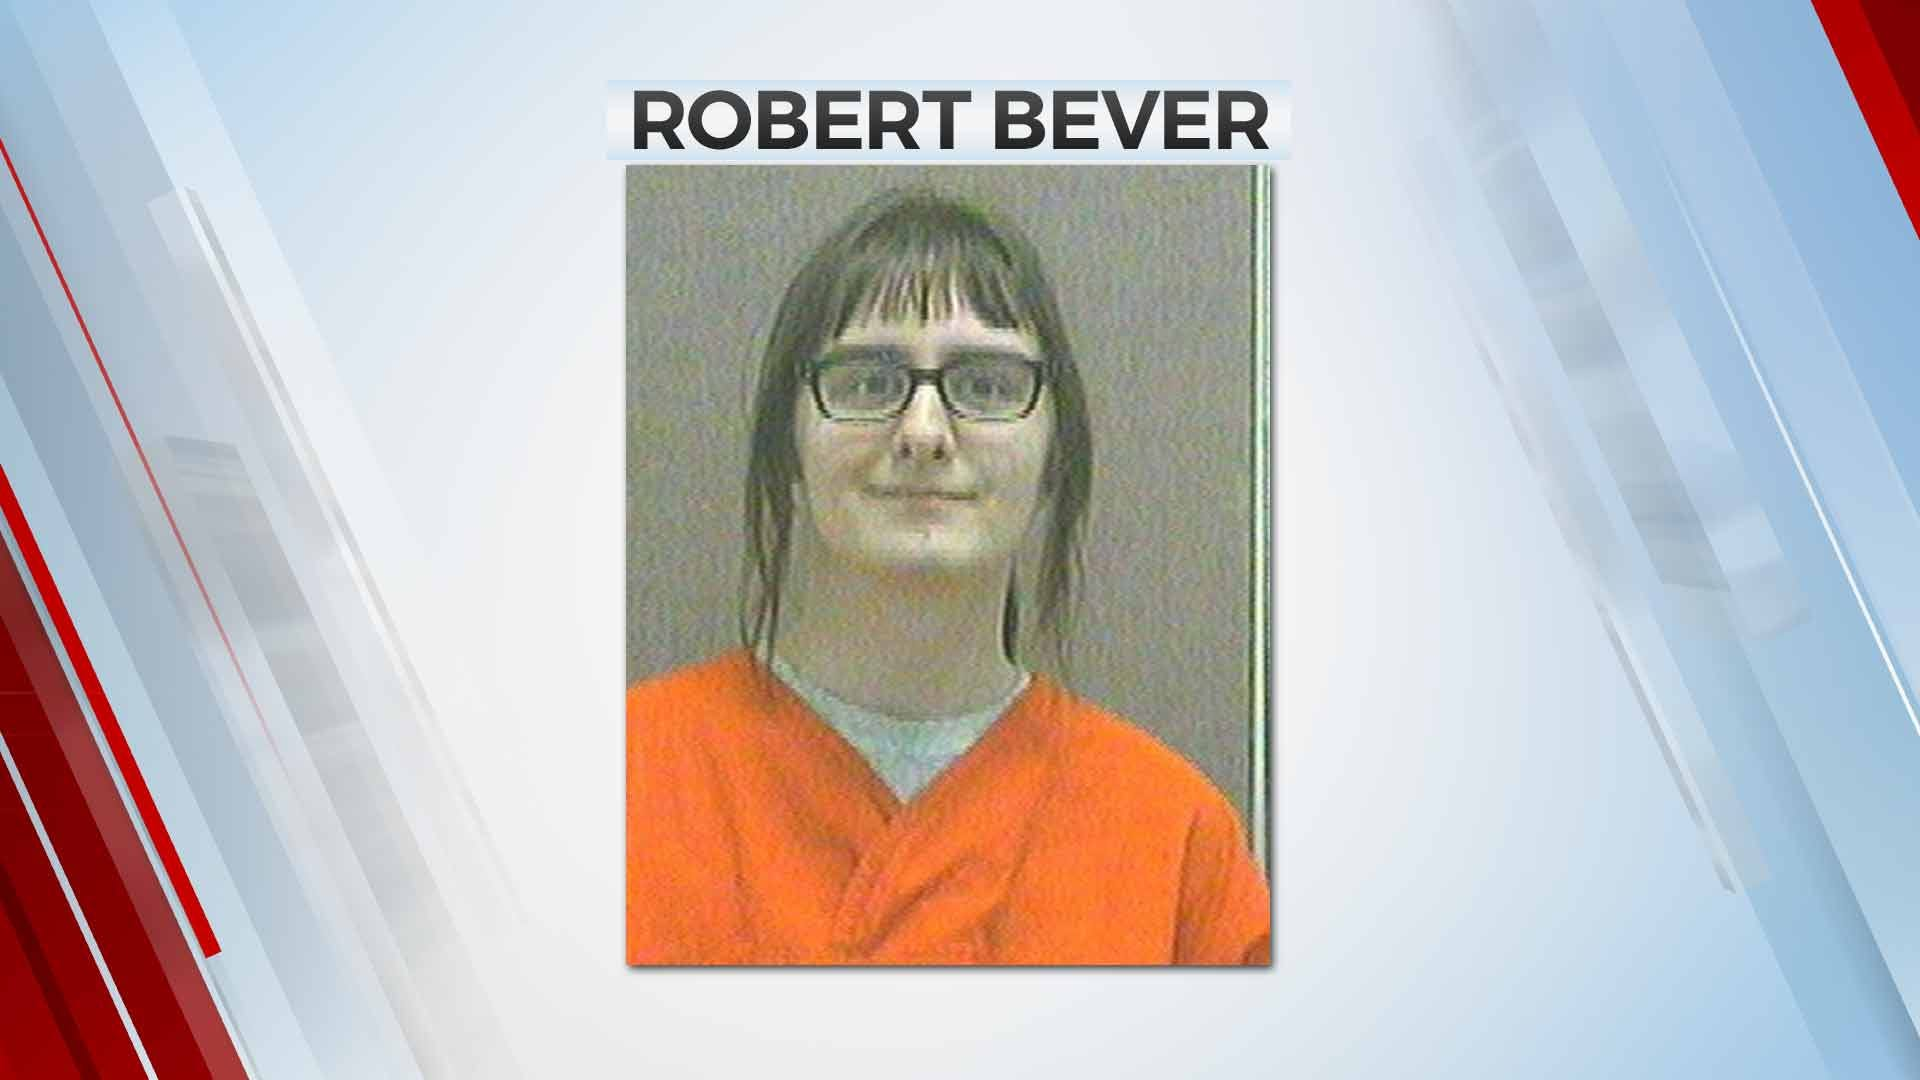 Robert Bever Tries To Attack Prison Staff With 'Sharpened Instrument,' Report States